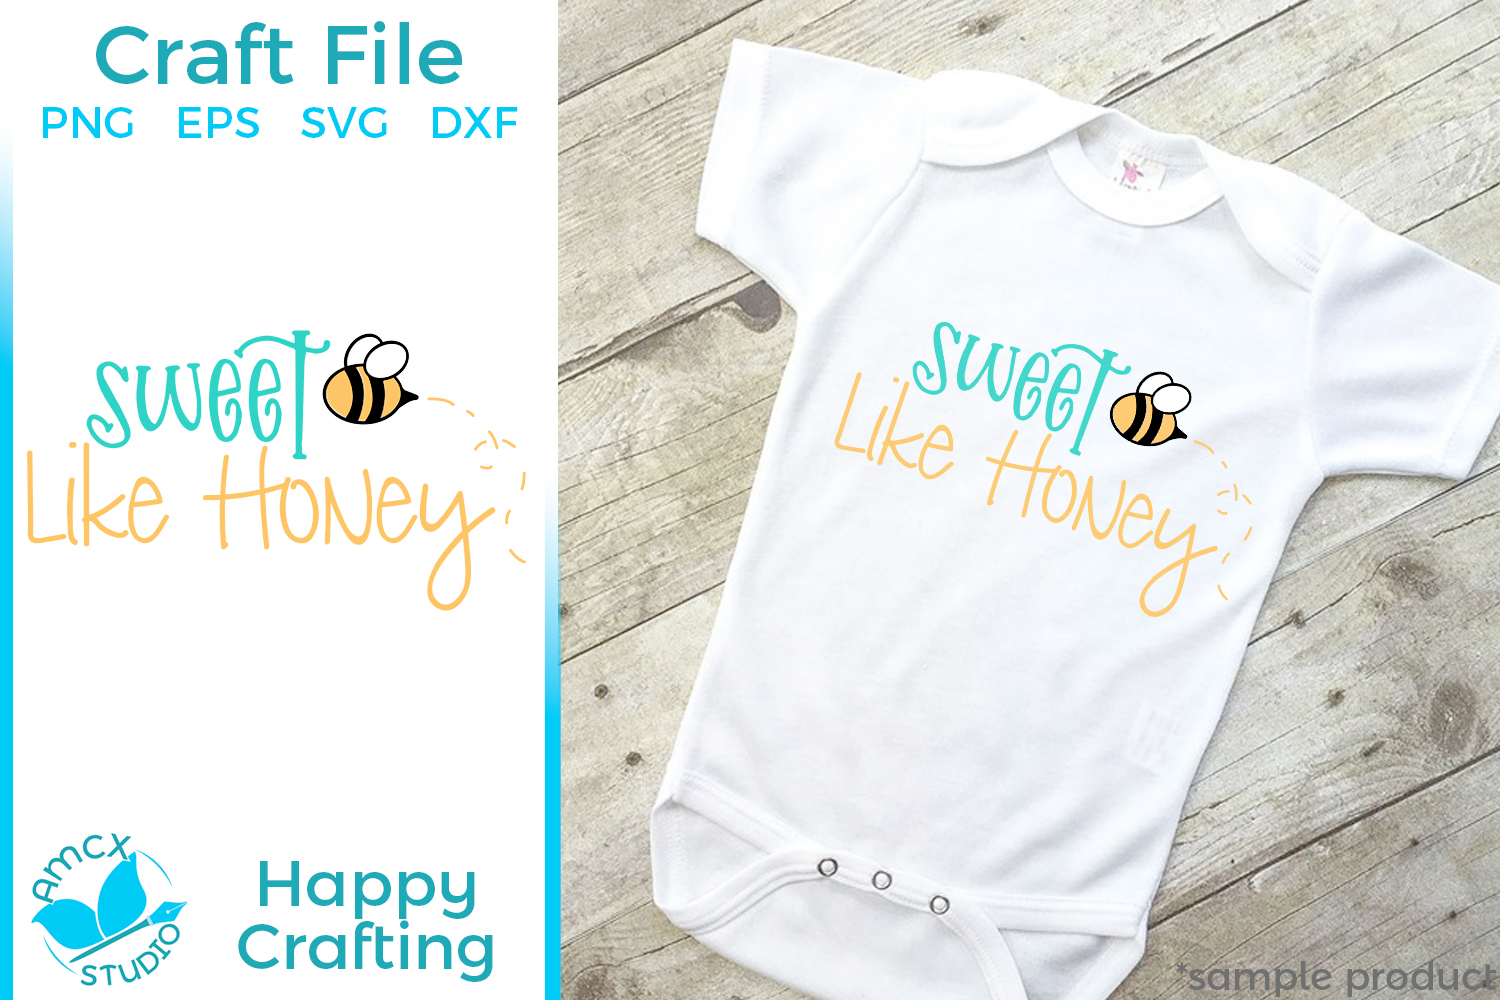 Sweet Like Honey - A Baby SVG File example image 1